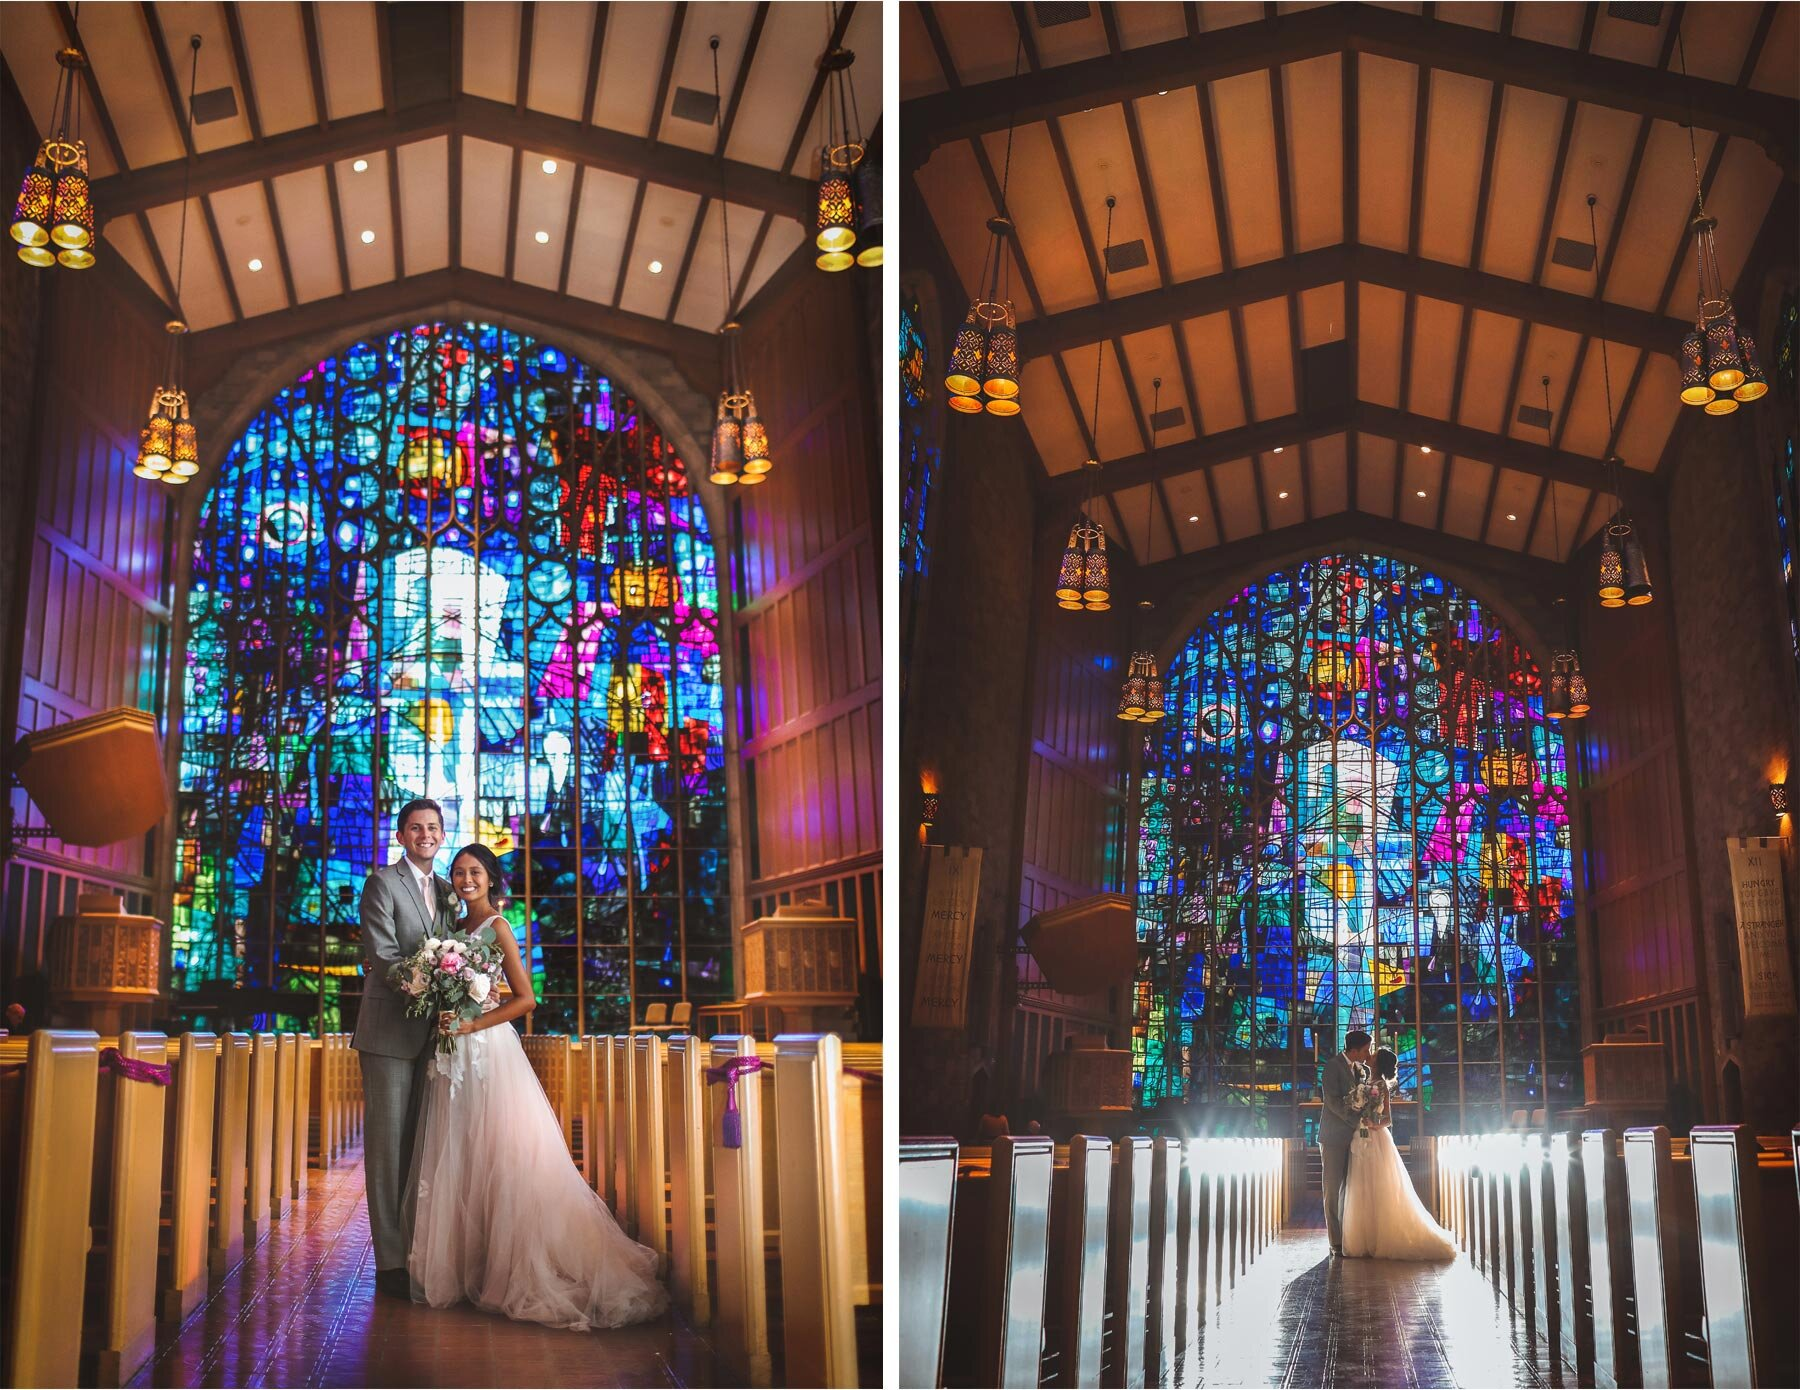 14-Wedding-by-Andrew-Vick-Photography-Chicago-Illinois-Alice-Millar-Chapel-Groom-Bride-Stained-Glass-Ashley-and-Nicholas.jpg